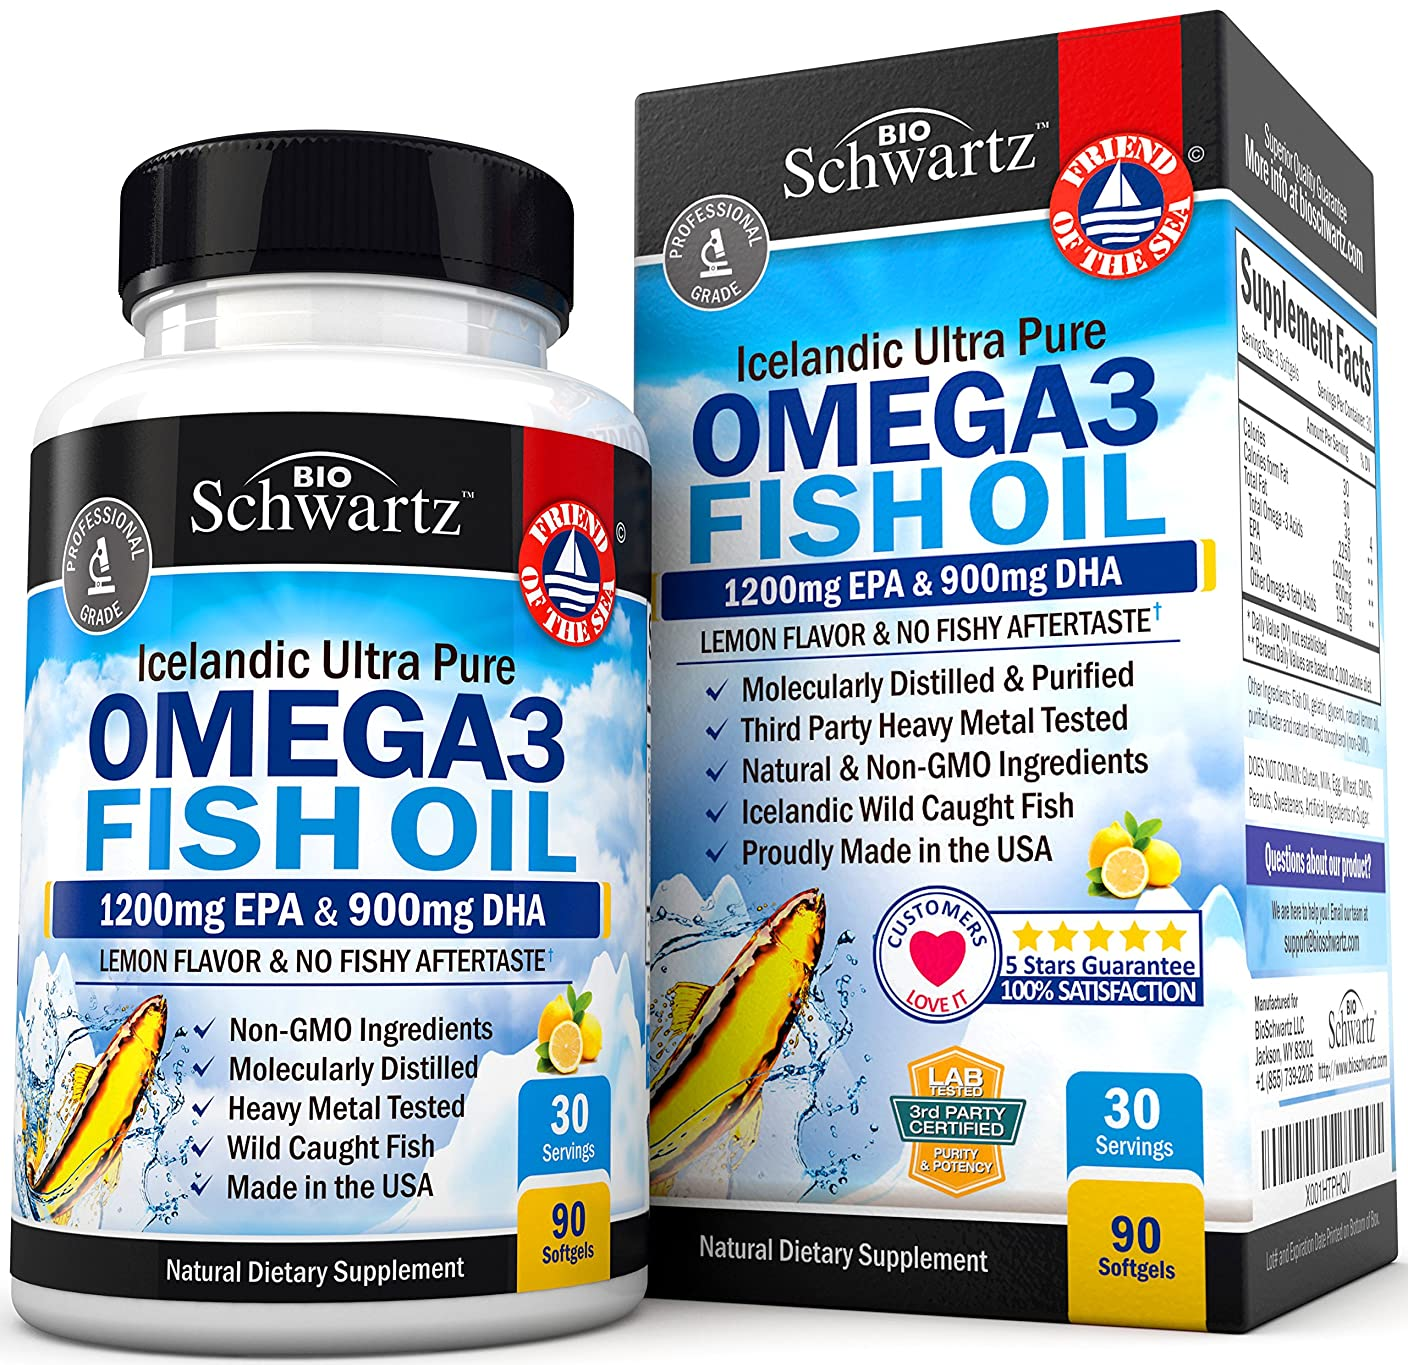 ハム続編一時的BioSchwartz Omega 3 Fish Oil Supplement with 1200mg EPA, 900mg DHA 90粒